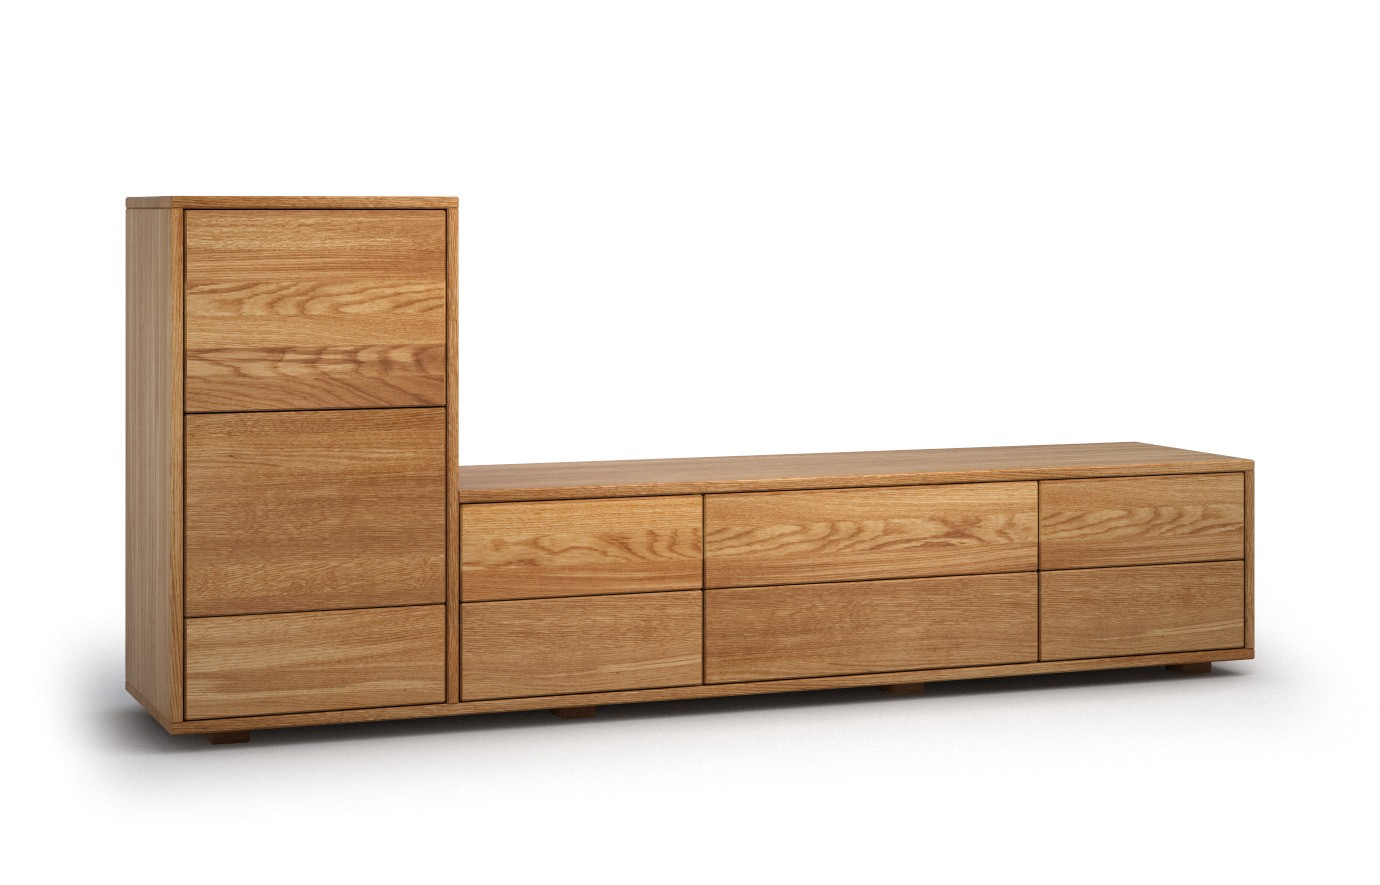 munita in eiche rustikal sideboard. Black Bedroom Furniture Sets. Home Design Ideas